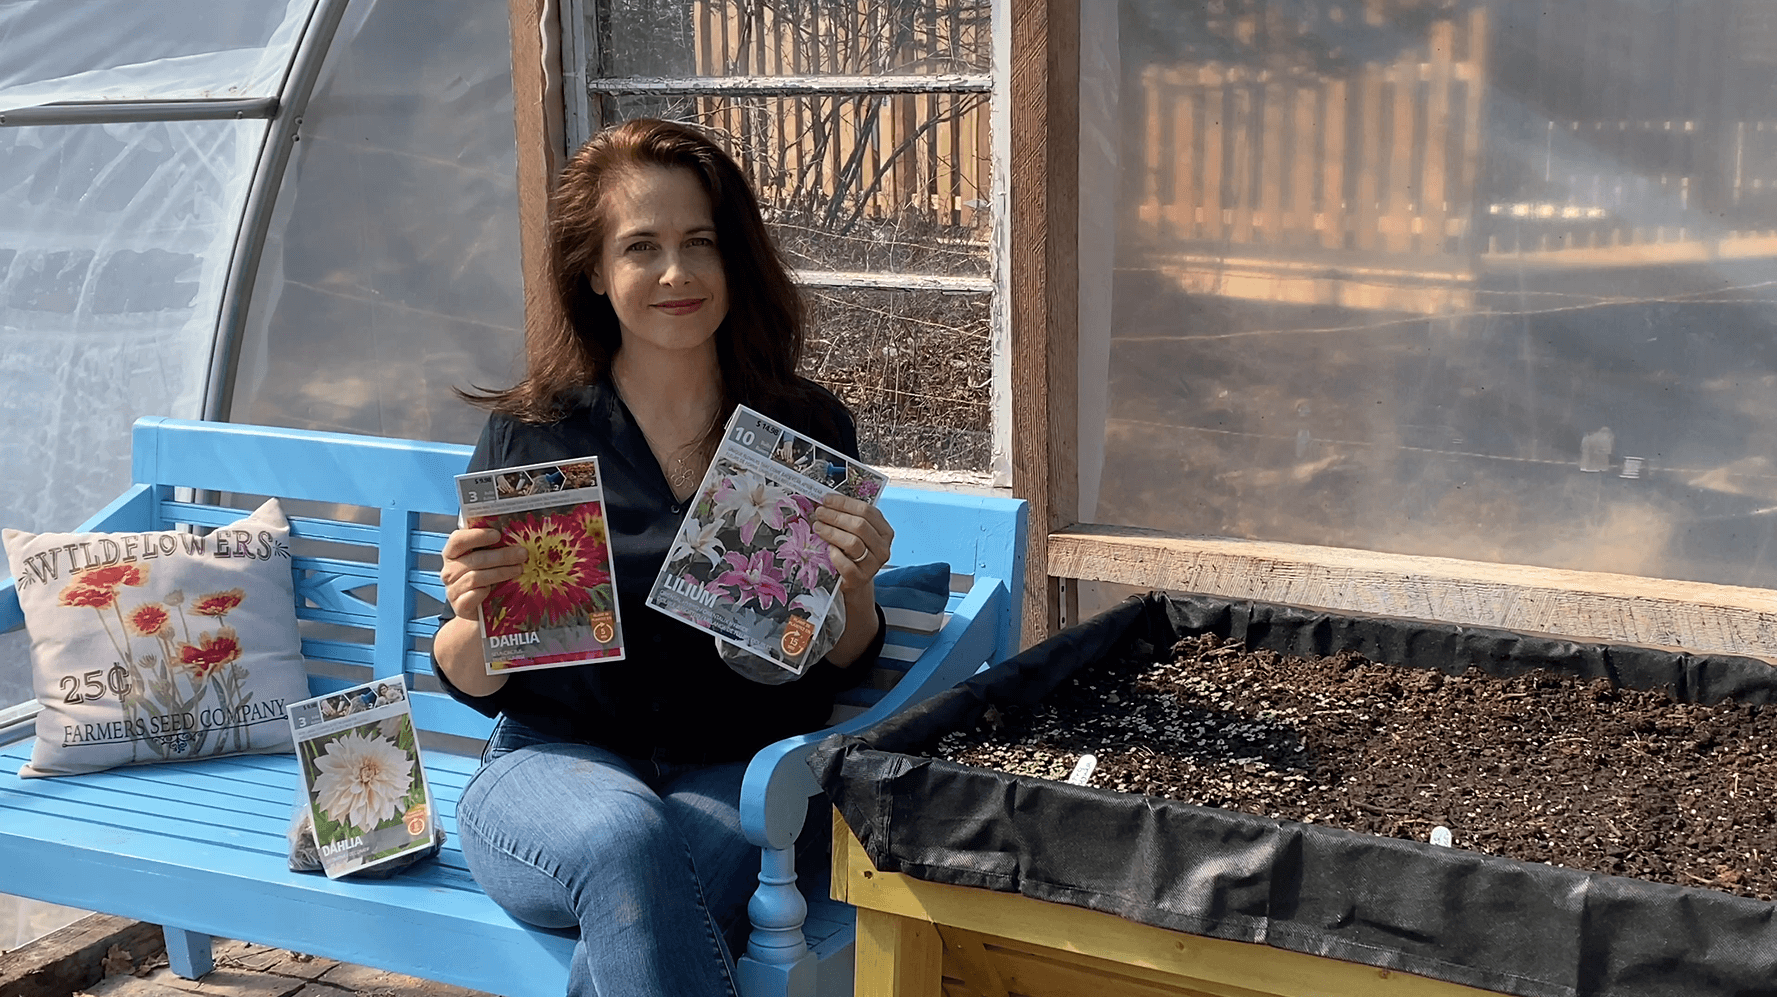 woman holding two gardening magazines with flowers on the cover